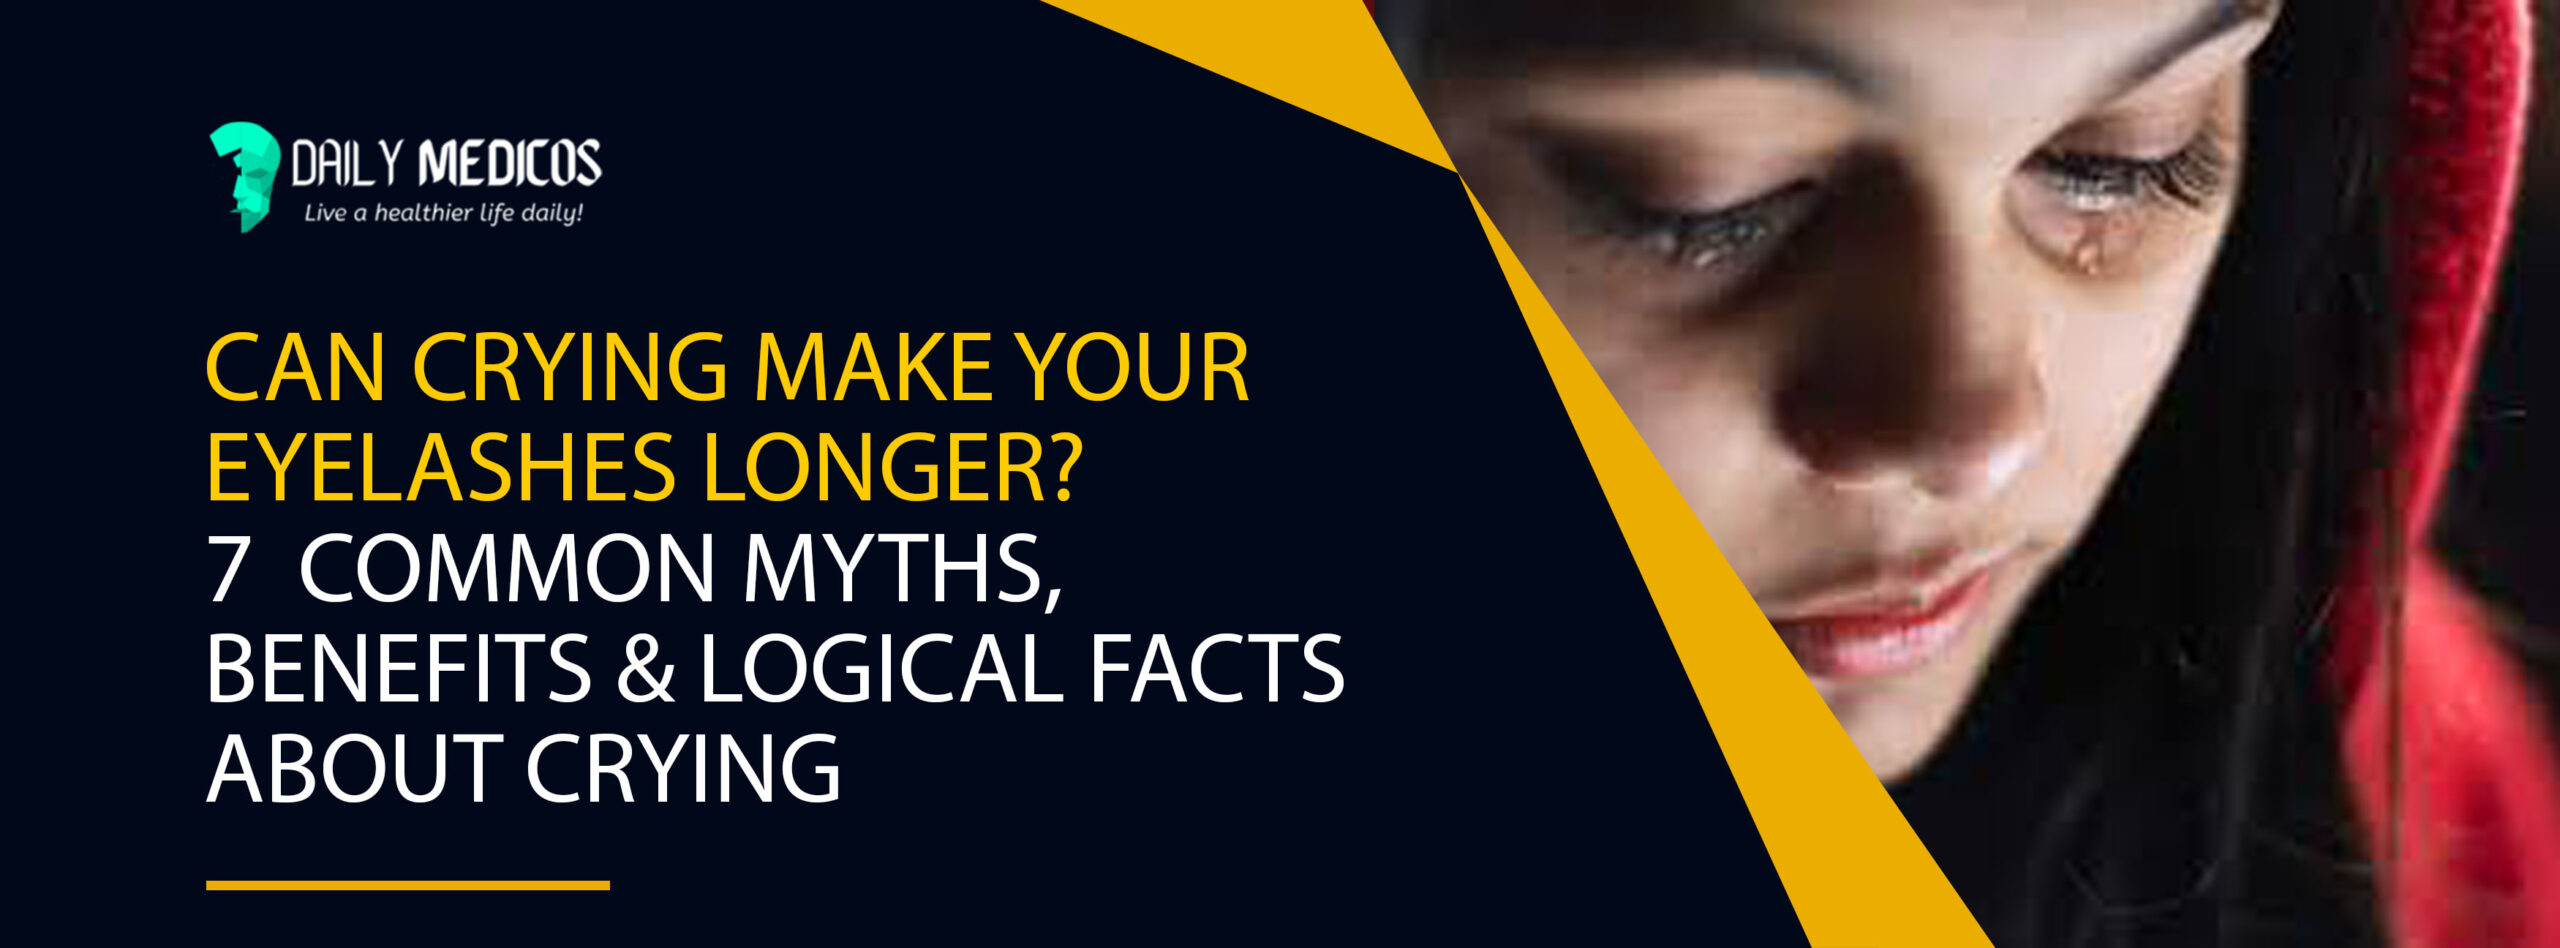 Can Crying Make Your Eyelashes Longer? 7 Common Myths, Benefits & Logical Facts About Crying 7 - Daily Medicos